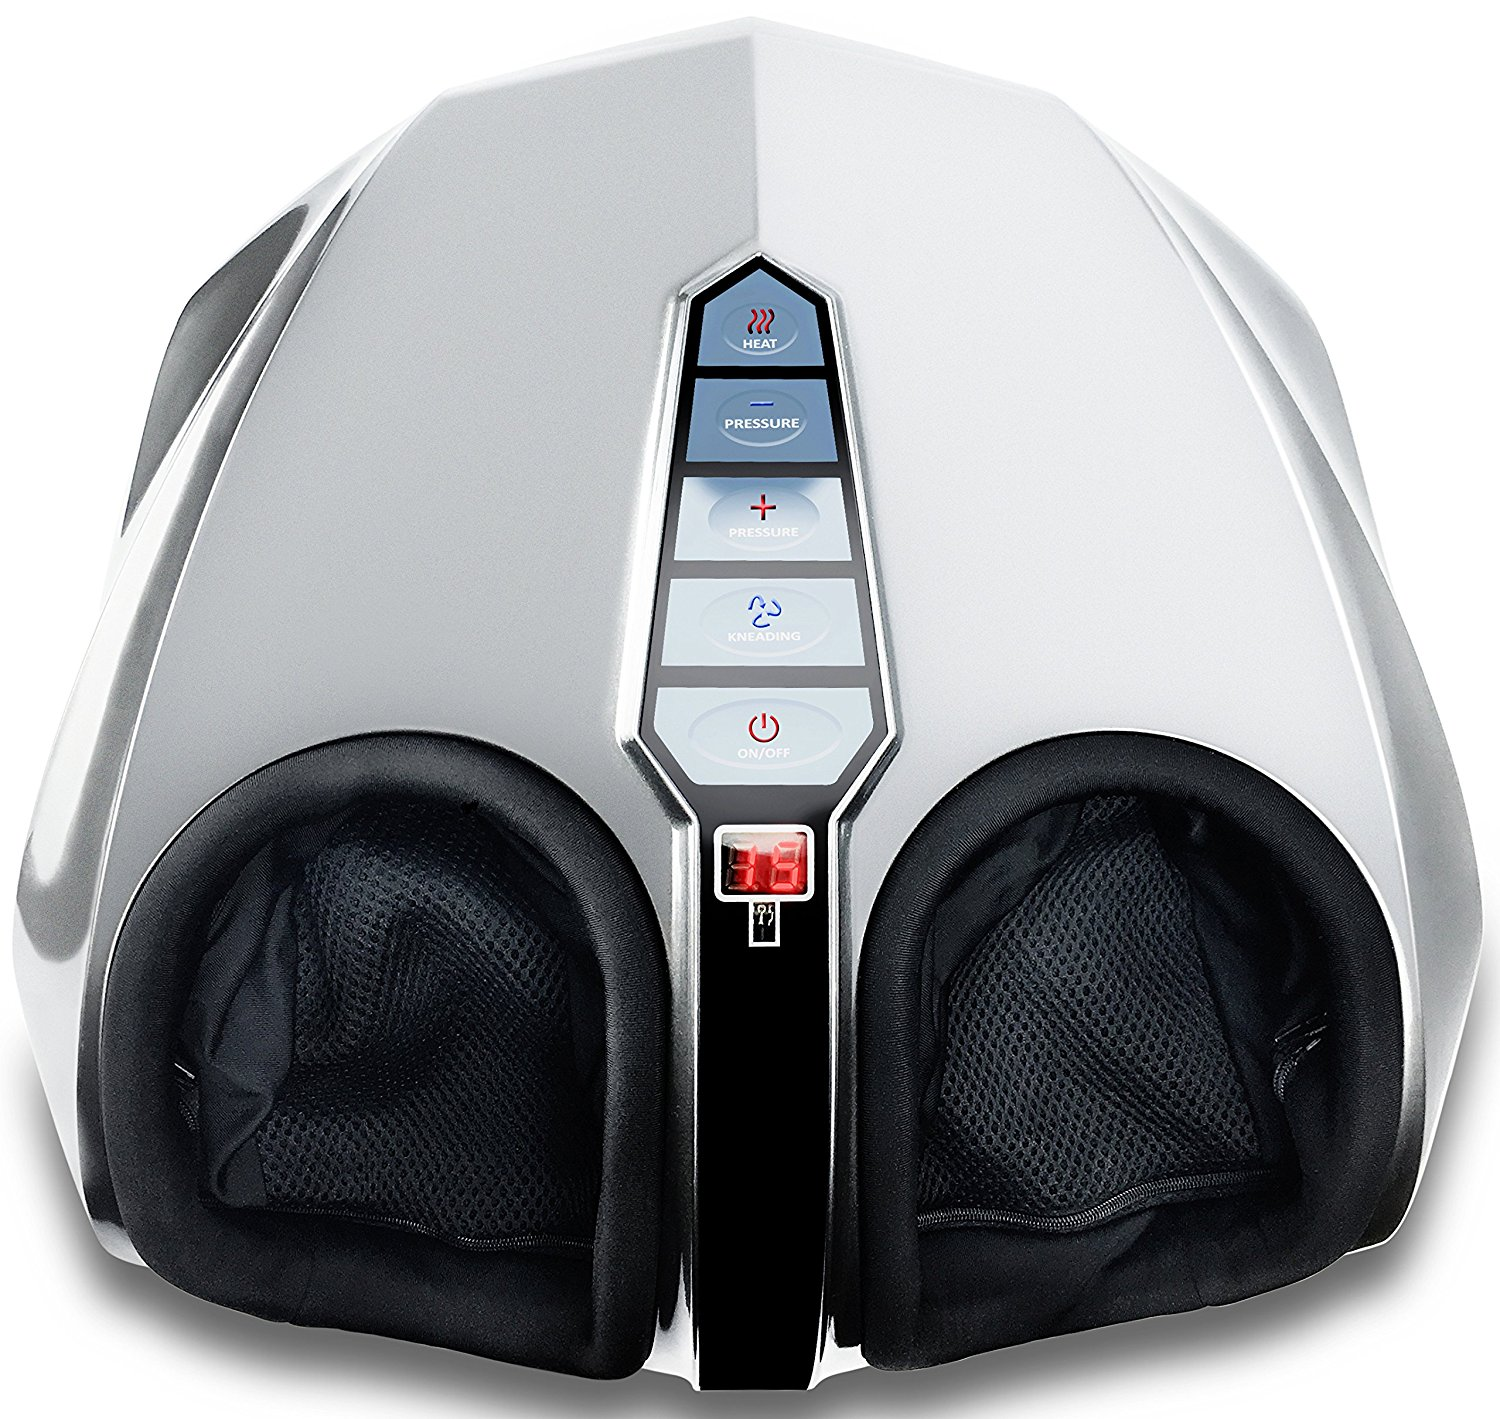 Miko Shiatsu Foot Massager Kneading and Rolling With Heat and Pressure Settings with 2 Remotes (Silver)